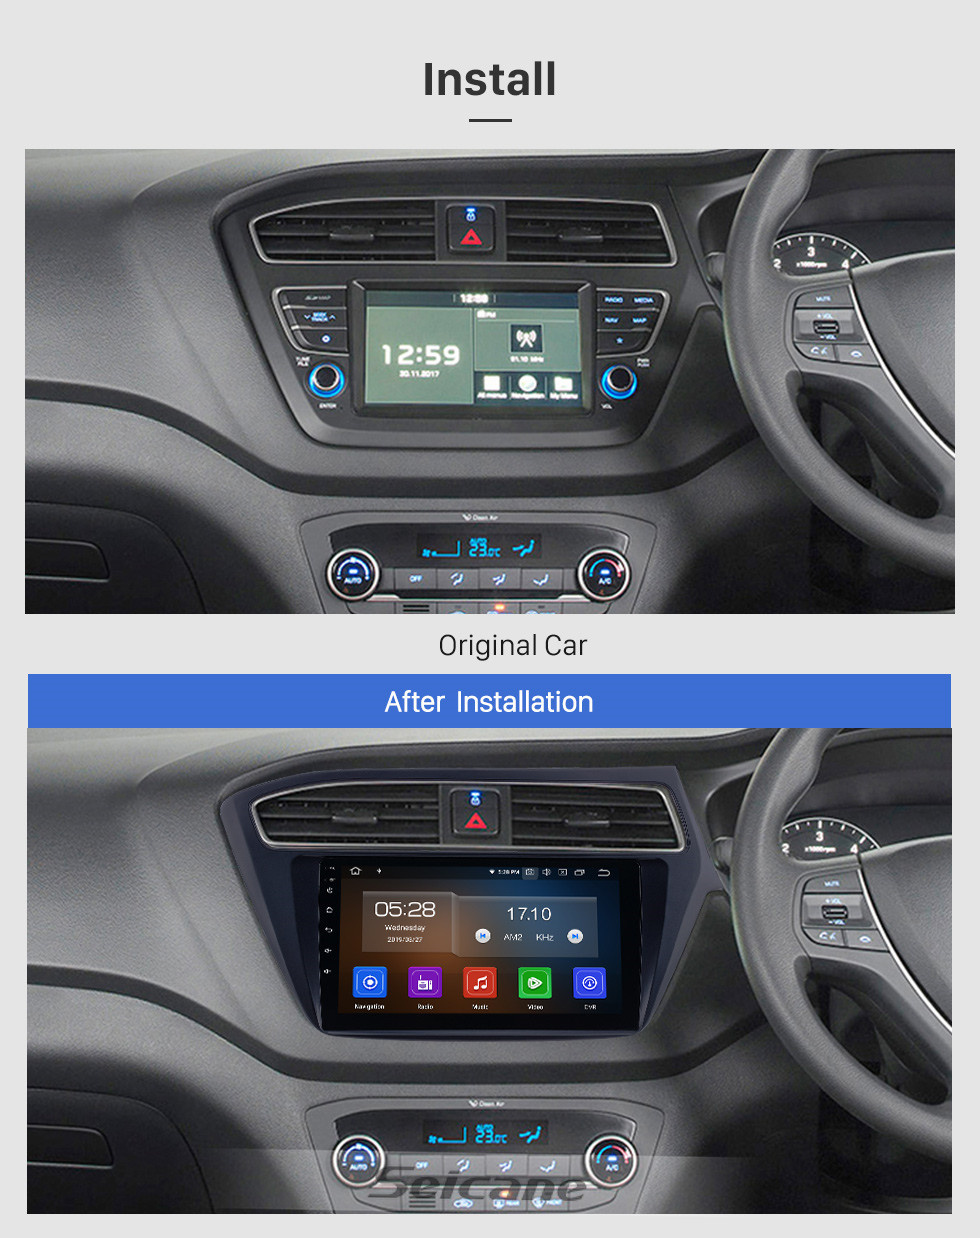 Seicane 9 inch Android 11.0 Radio for 2018-2019 Hyundai i20 RHD with GPS Navigation HD Touchscreen Bluetooth Carplay Audio System support Rearview camera TPMS